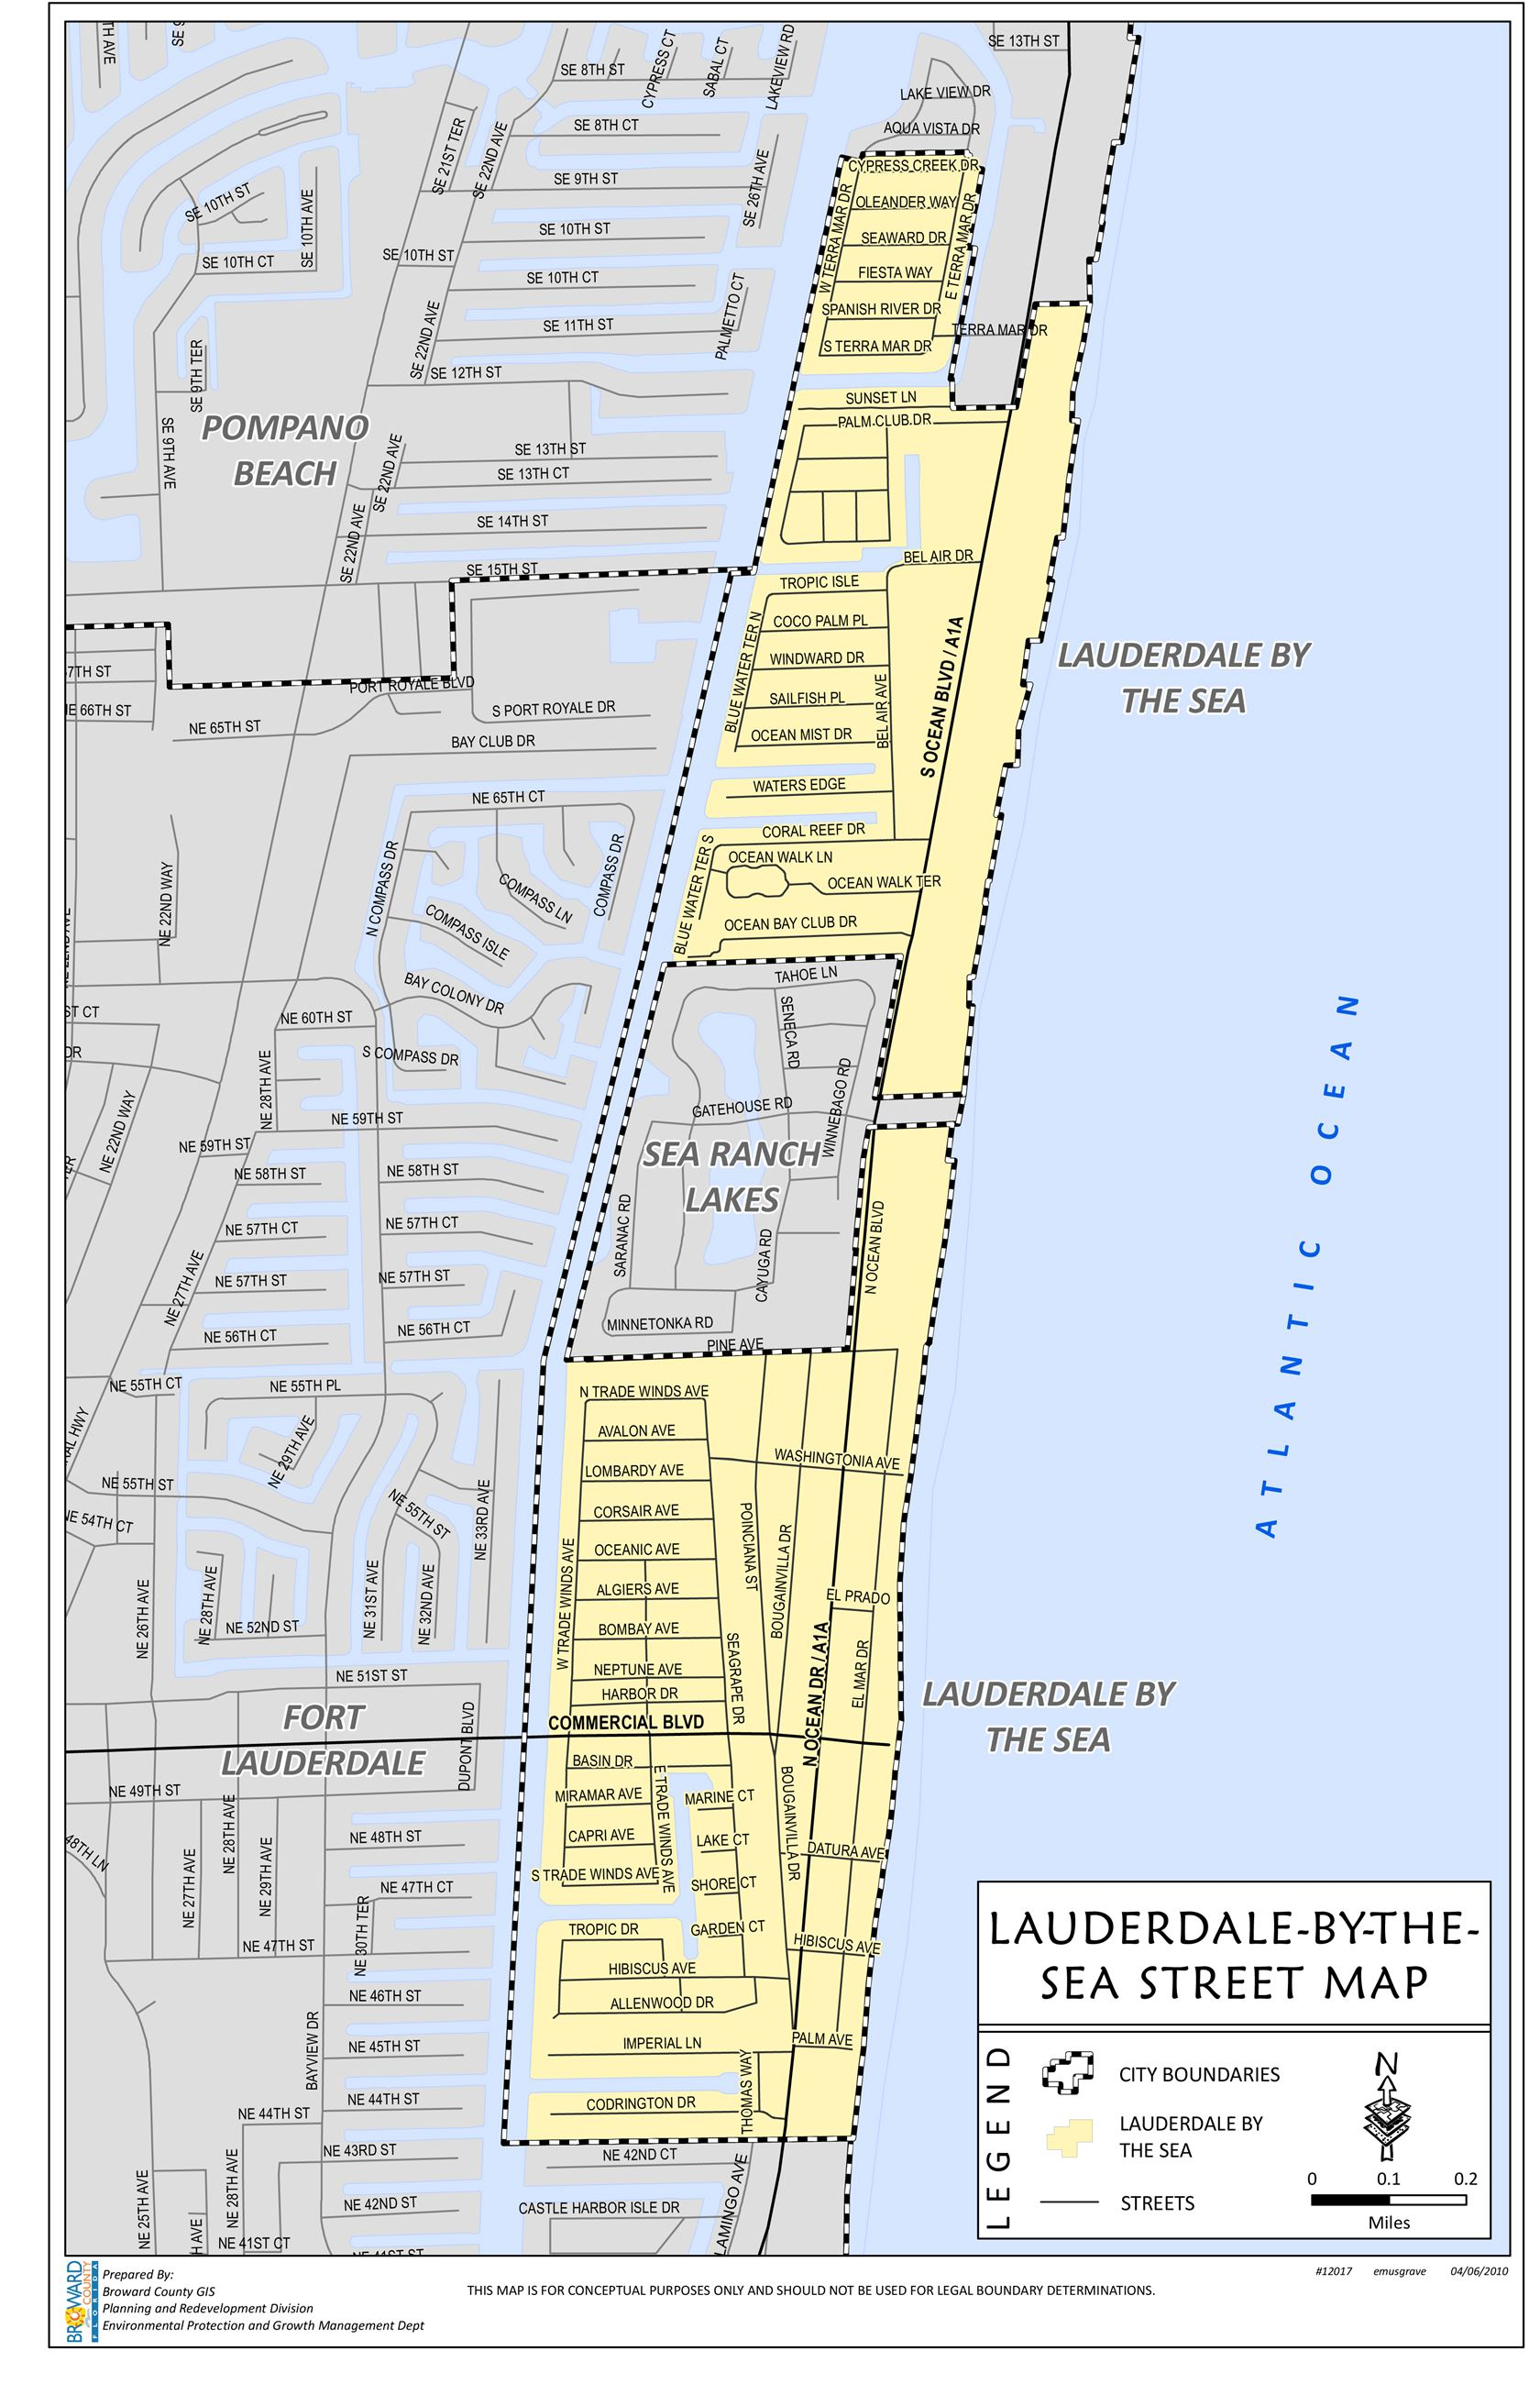 Lauderdale-By-The-Sea Town Map